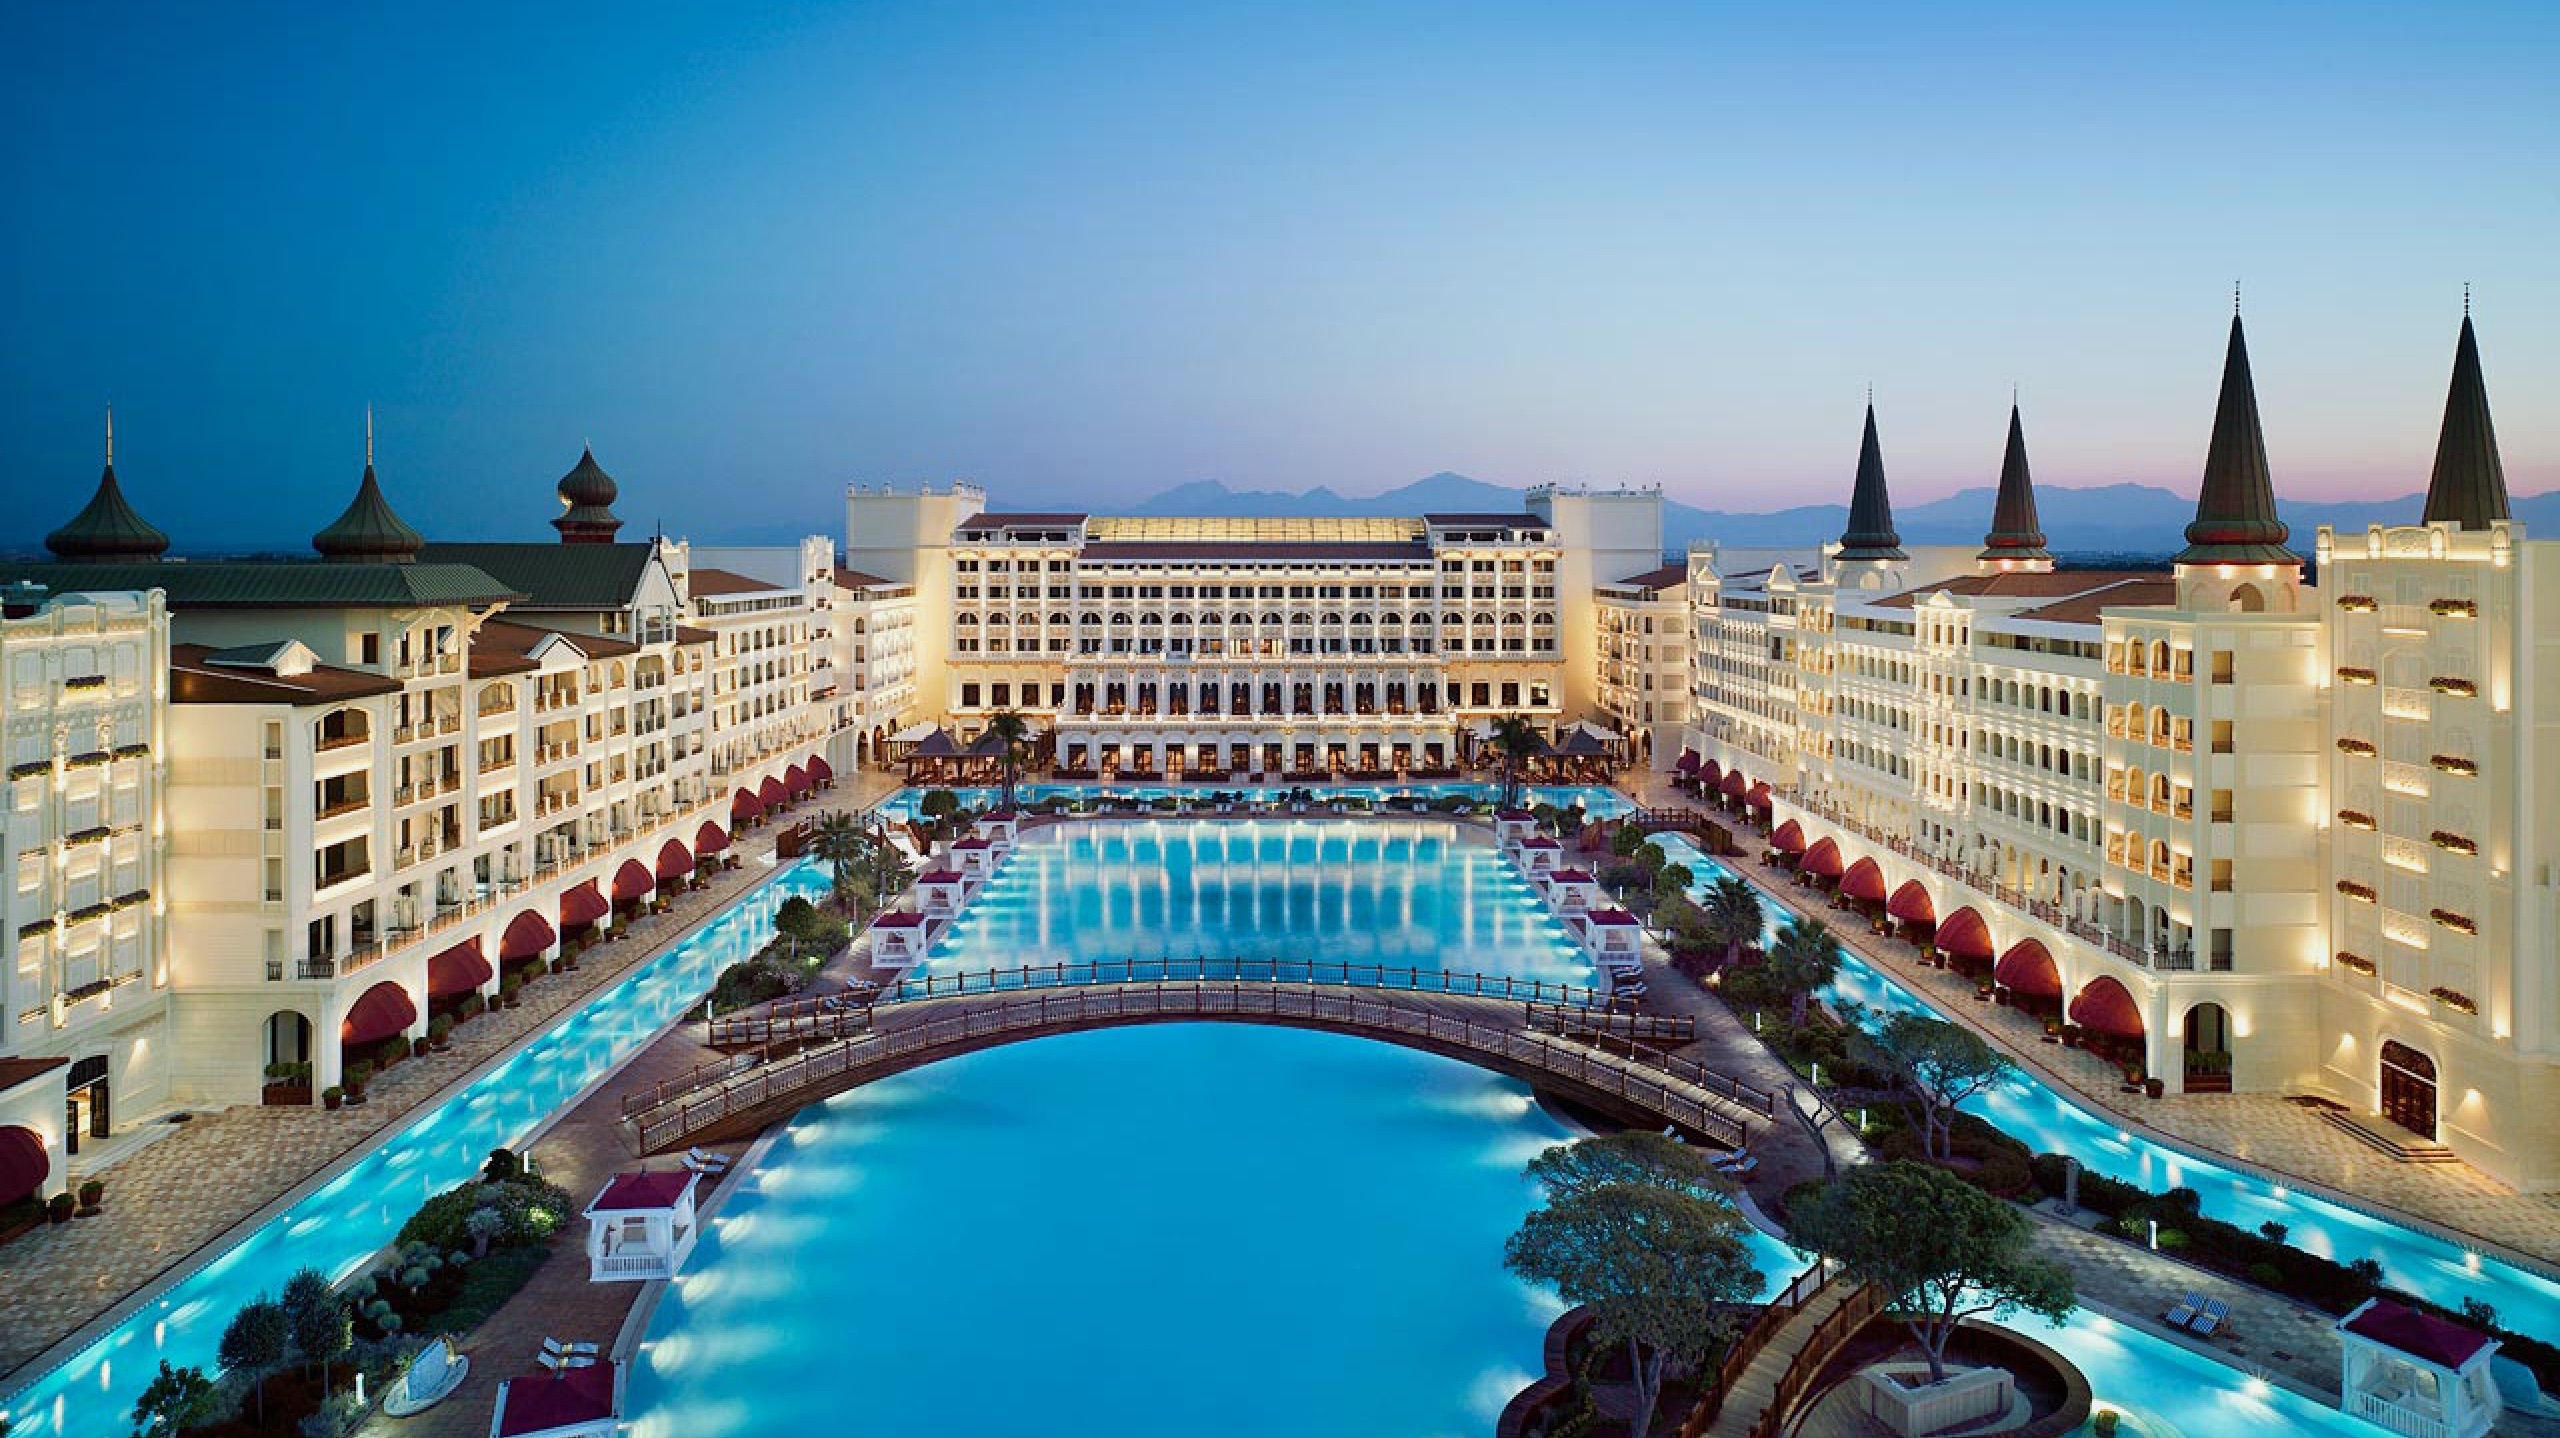 Mardan Palace, a world's most opulent hotel